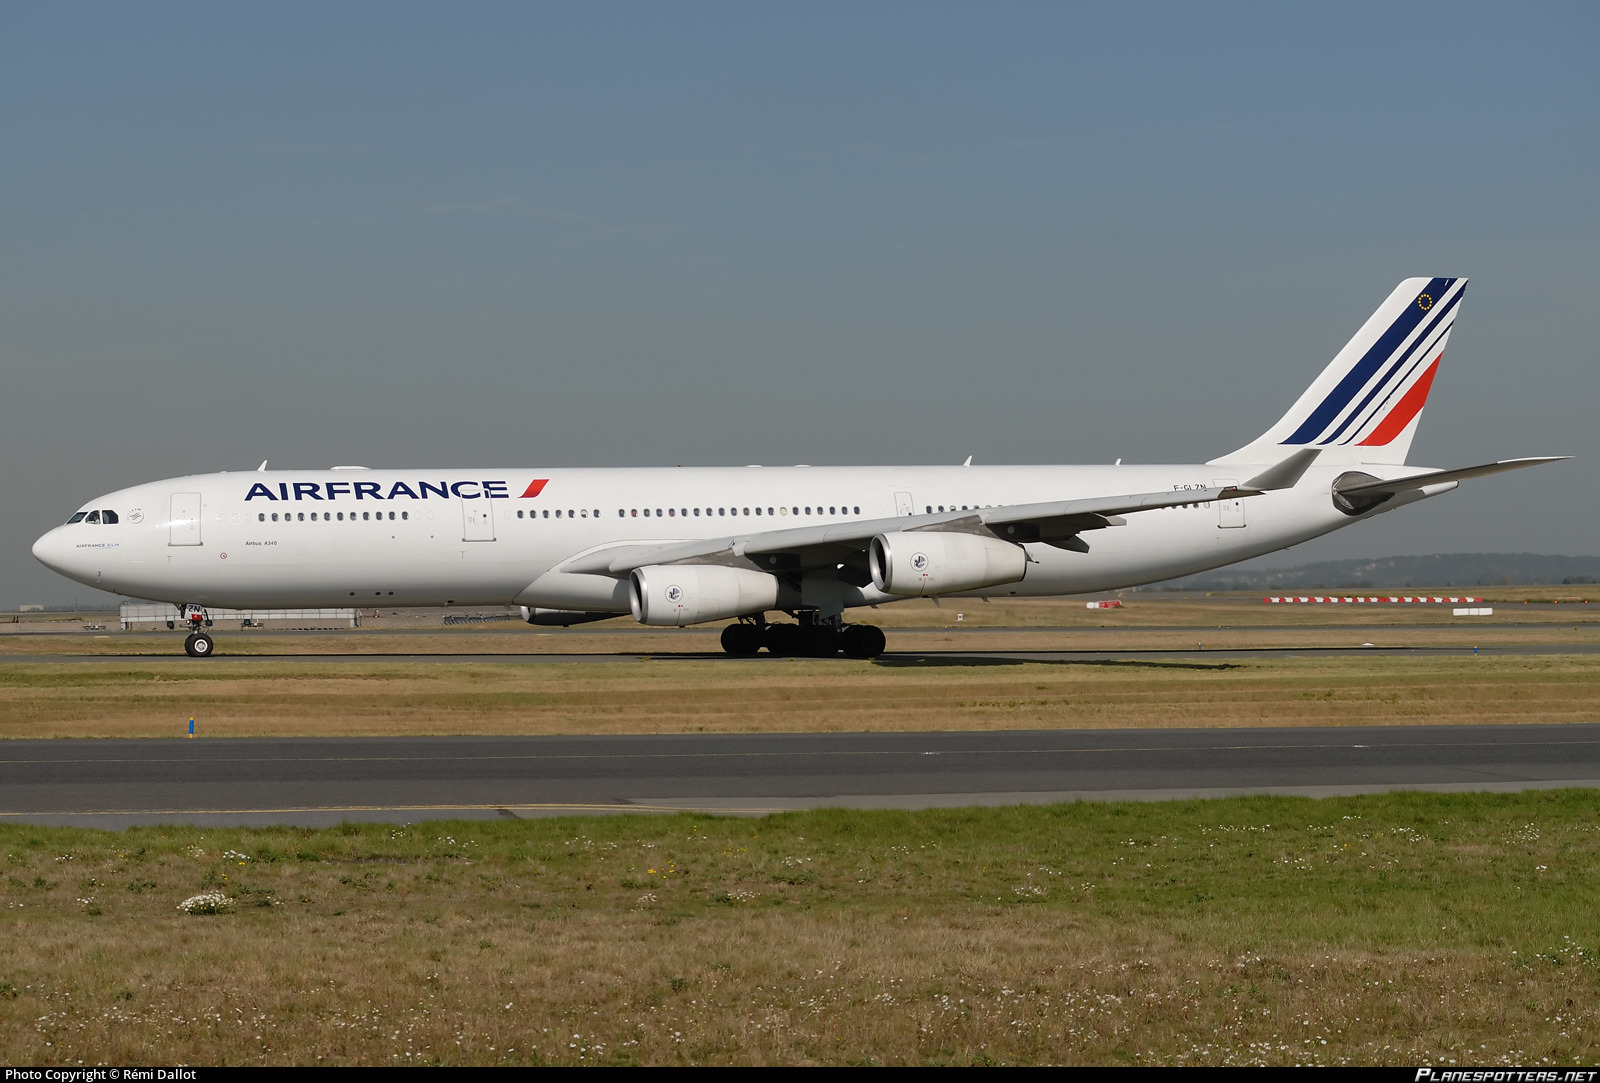 f glzn air france airbus a340 313 photo by remi dallot id 220310. Black Bedroom Furniture Sets. Home Design Ideas